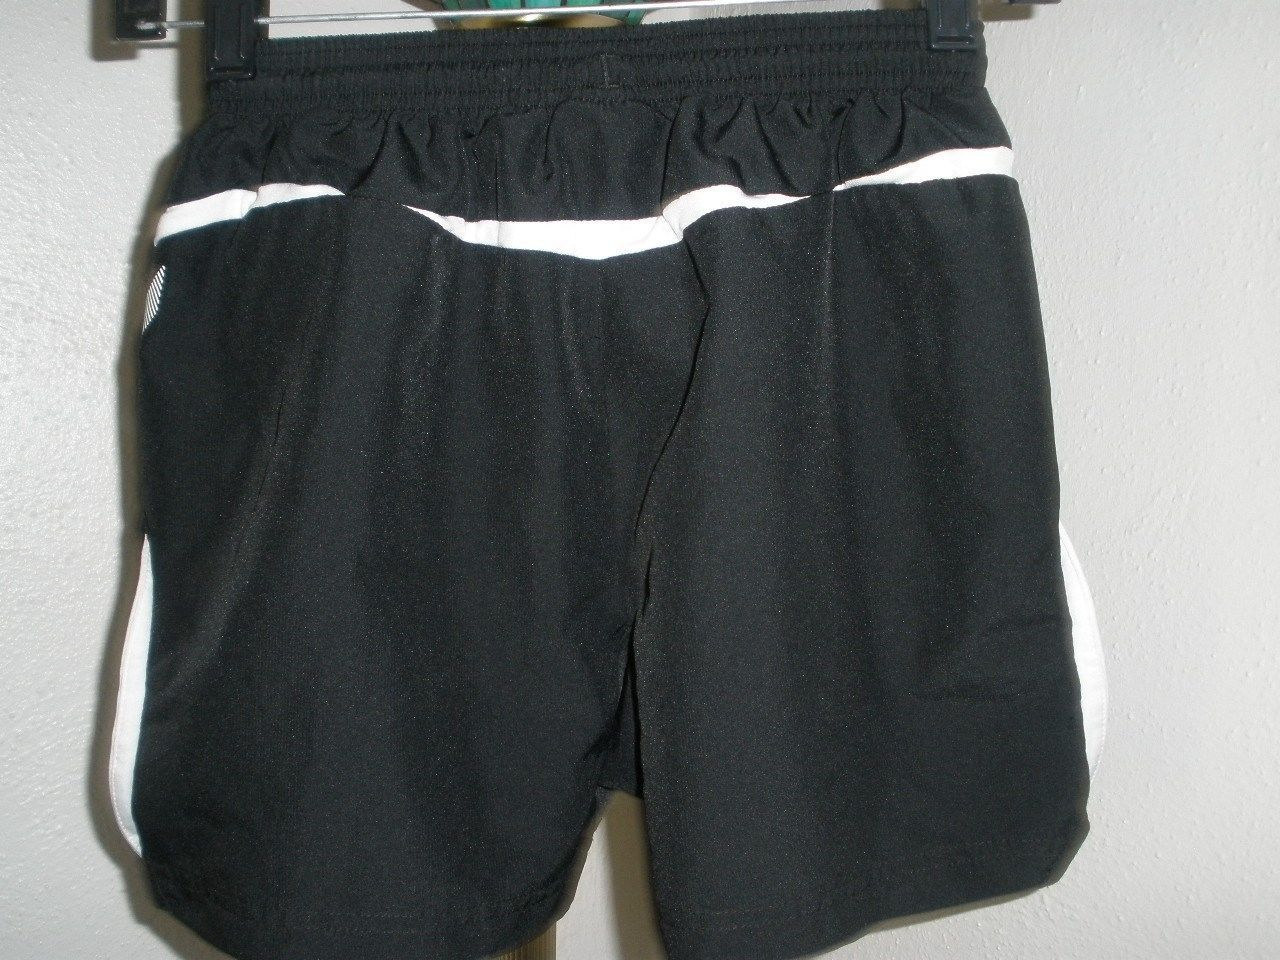 a94cda65f5 Youth Medium Umbro Soccer Shorts Excellent Condition Black w/White